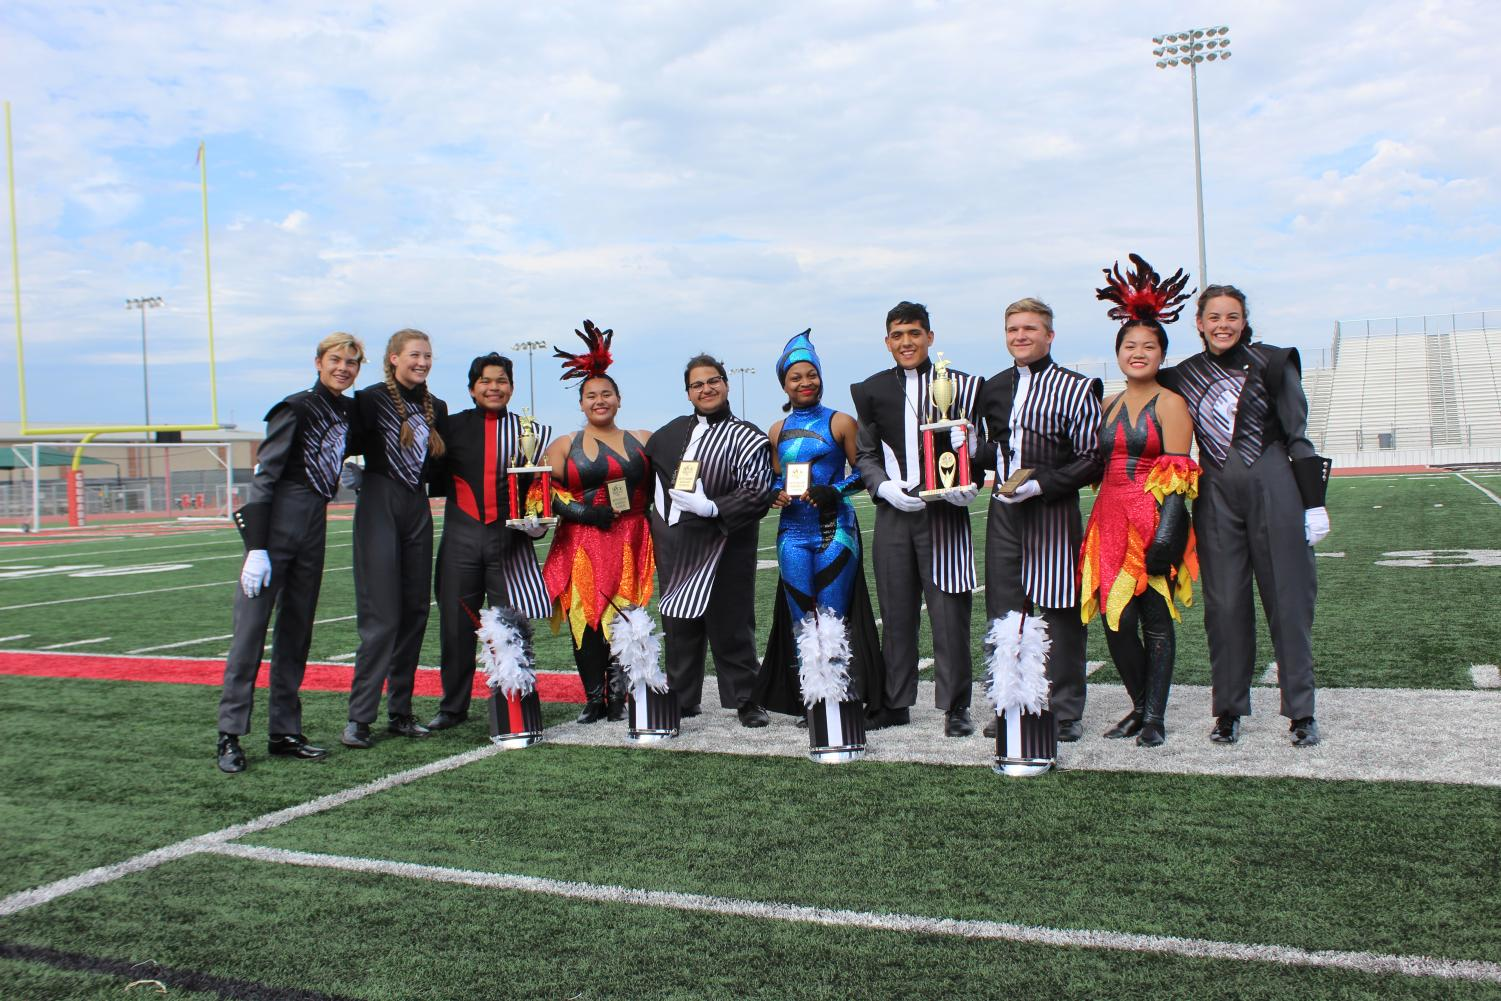 Band leaders gather to display their awards at the Comal Classic Marching Festival.